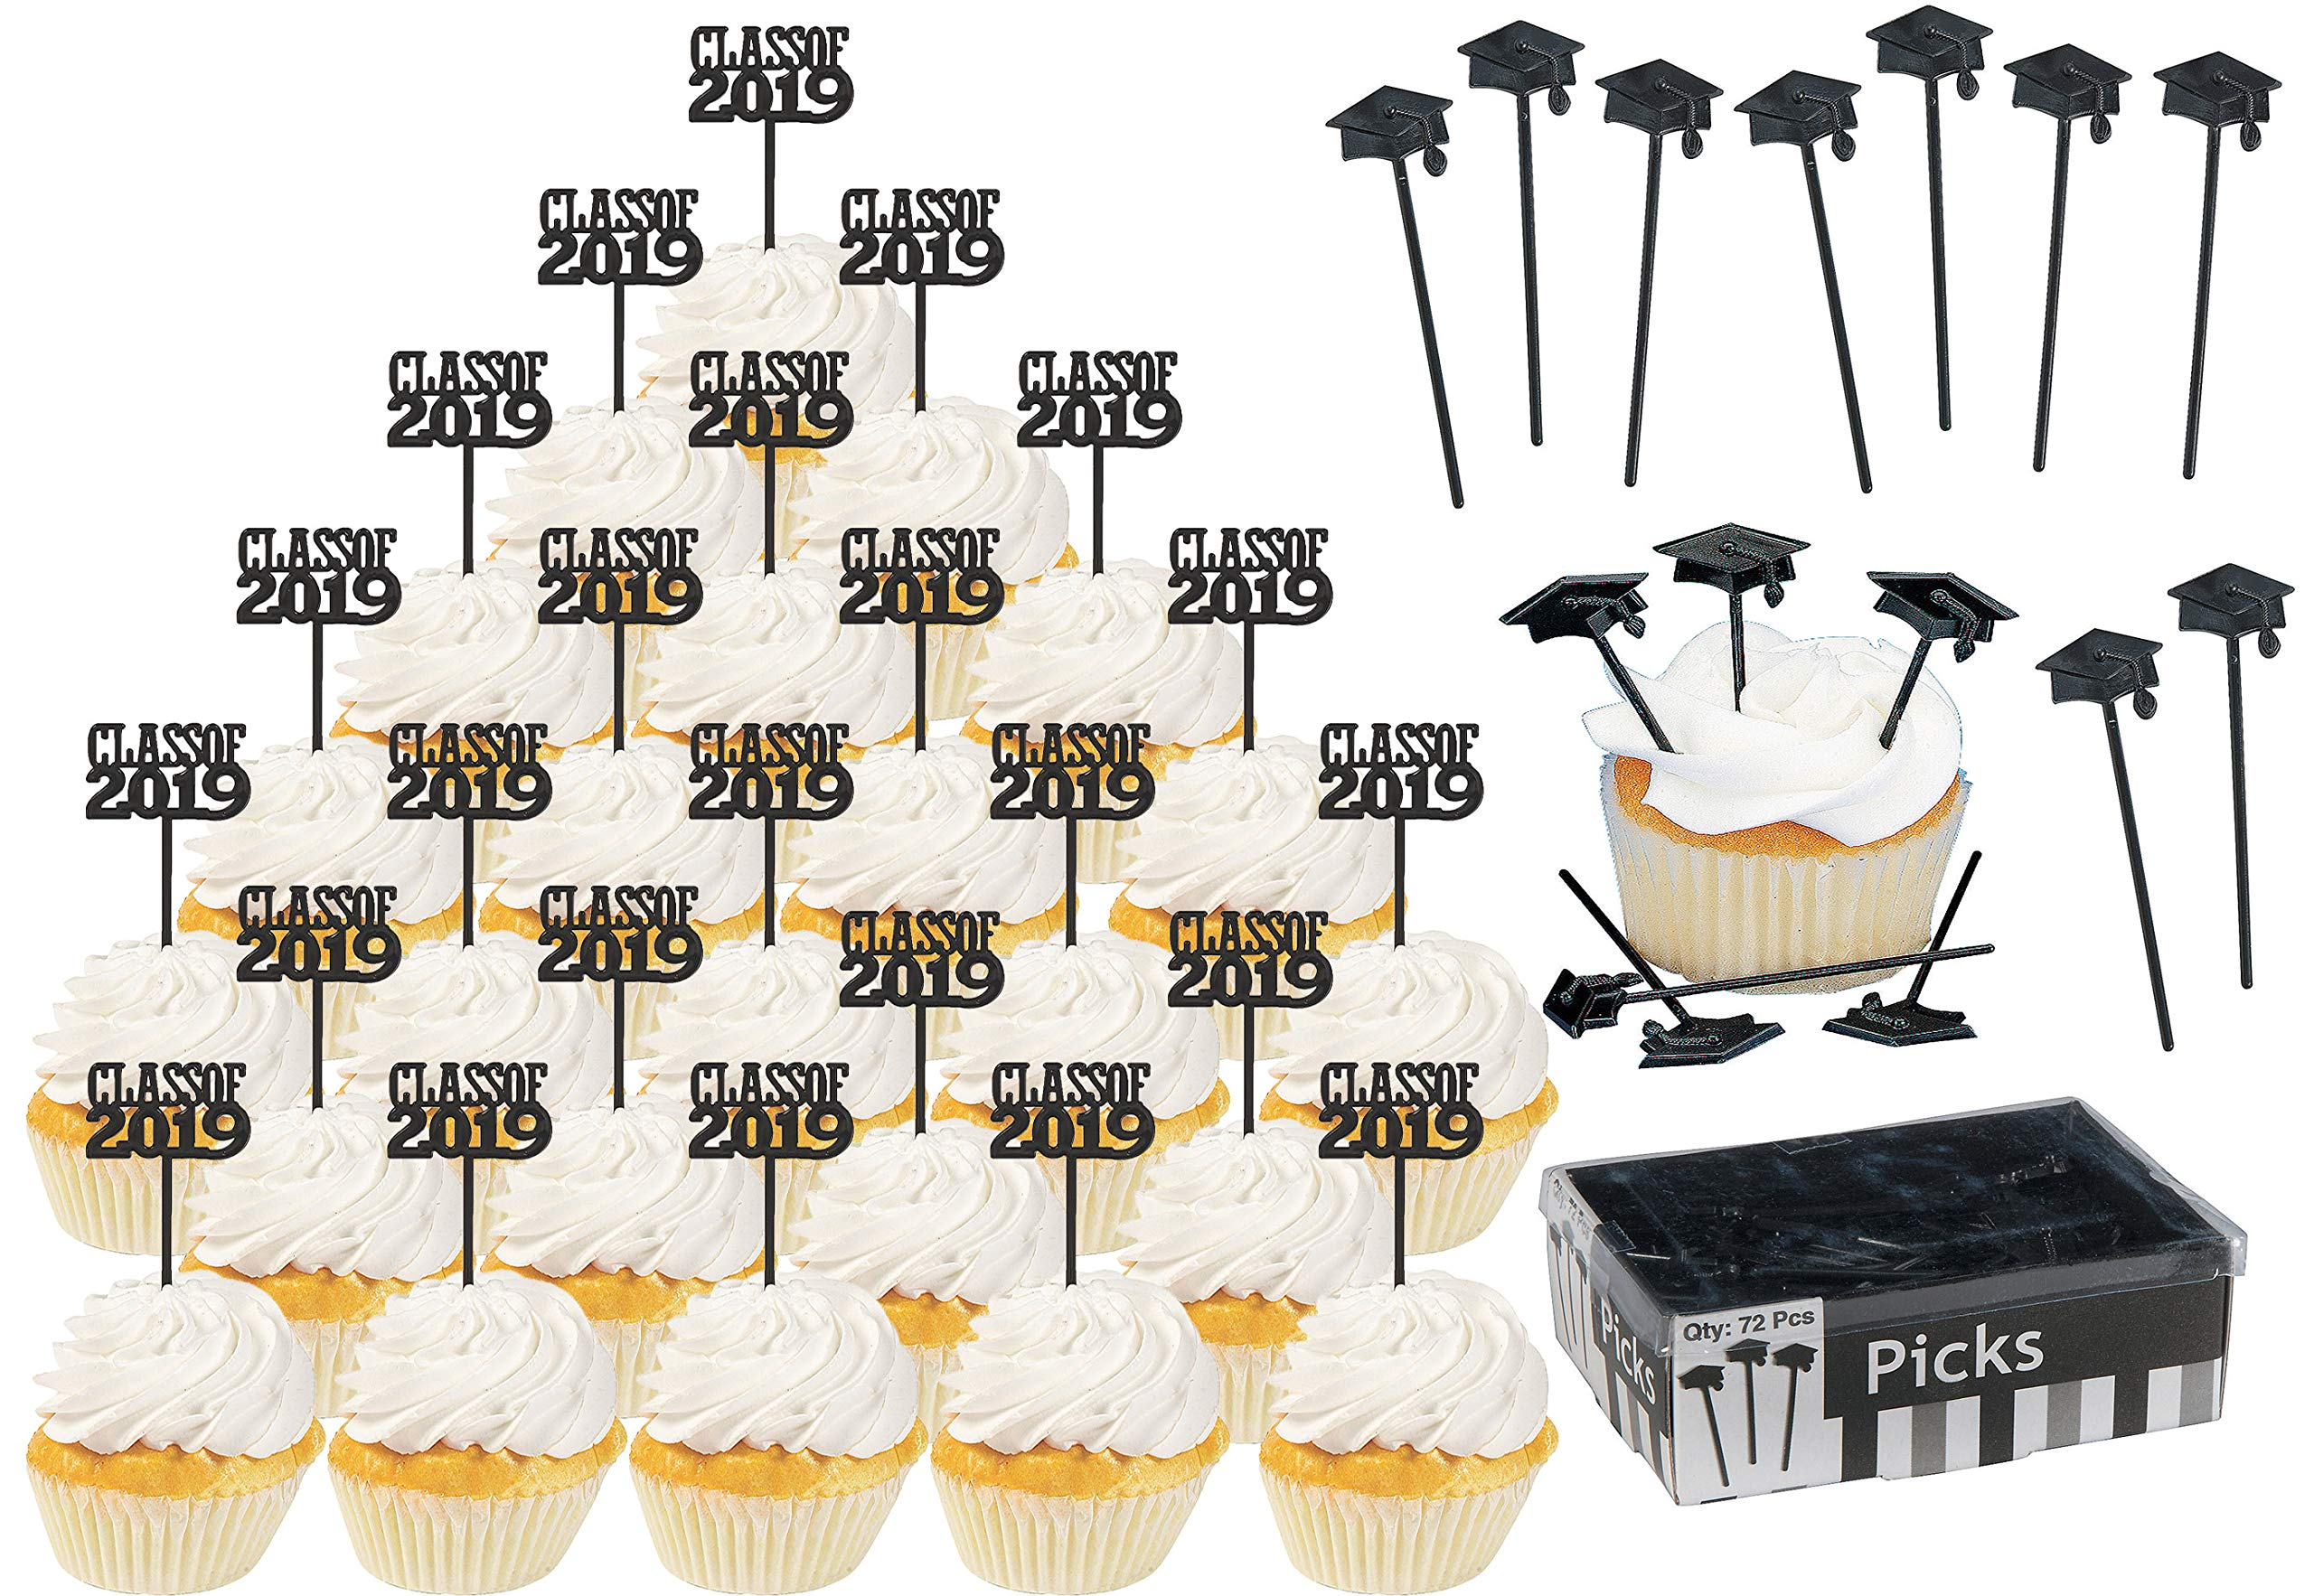 Class of 2019 Graduation Party Decorations BULK 144 Pack - 72 Class of 2019 Cupcake Picks, 72 Picks With The Cap on Top - Graduation Cupcake Picks - Cupcake topper Food Appetizer Picks